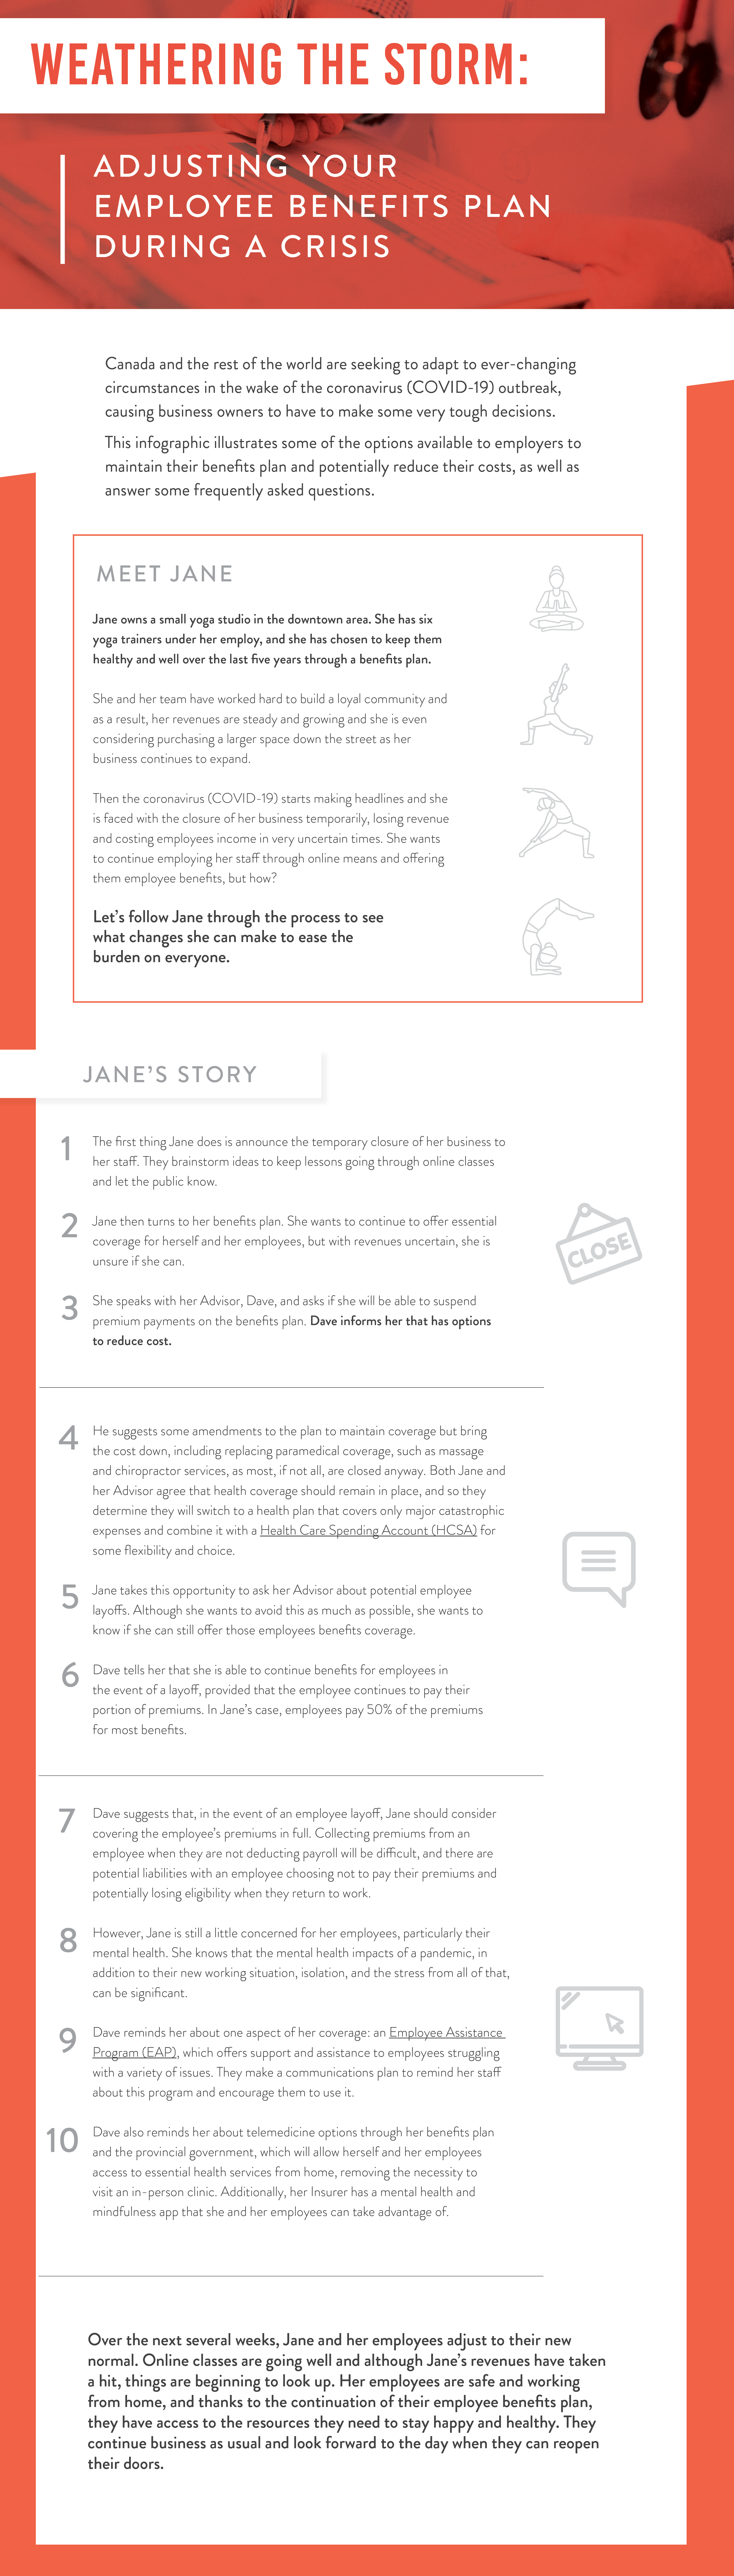 Weathering the Storm: Adjusting Your Employee Benefits Plan During a Crisis [Infographic]